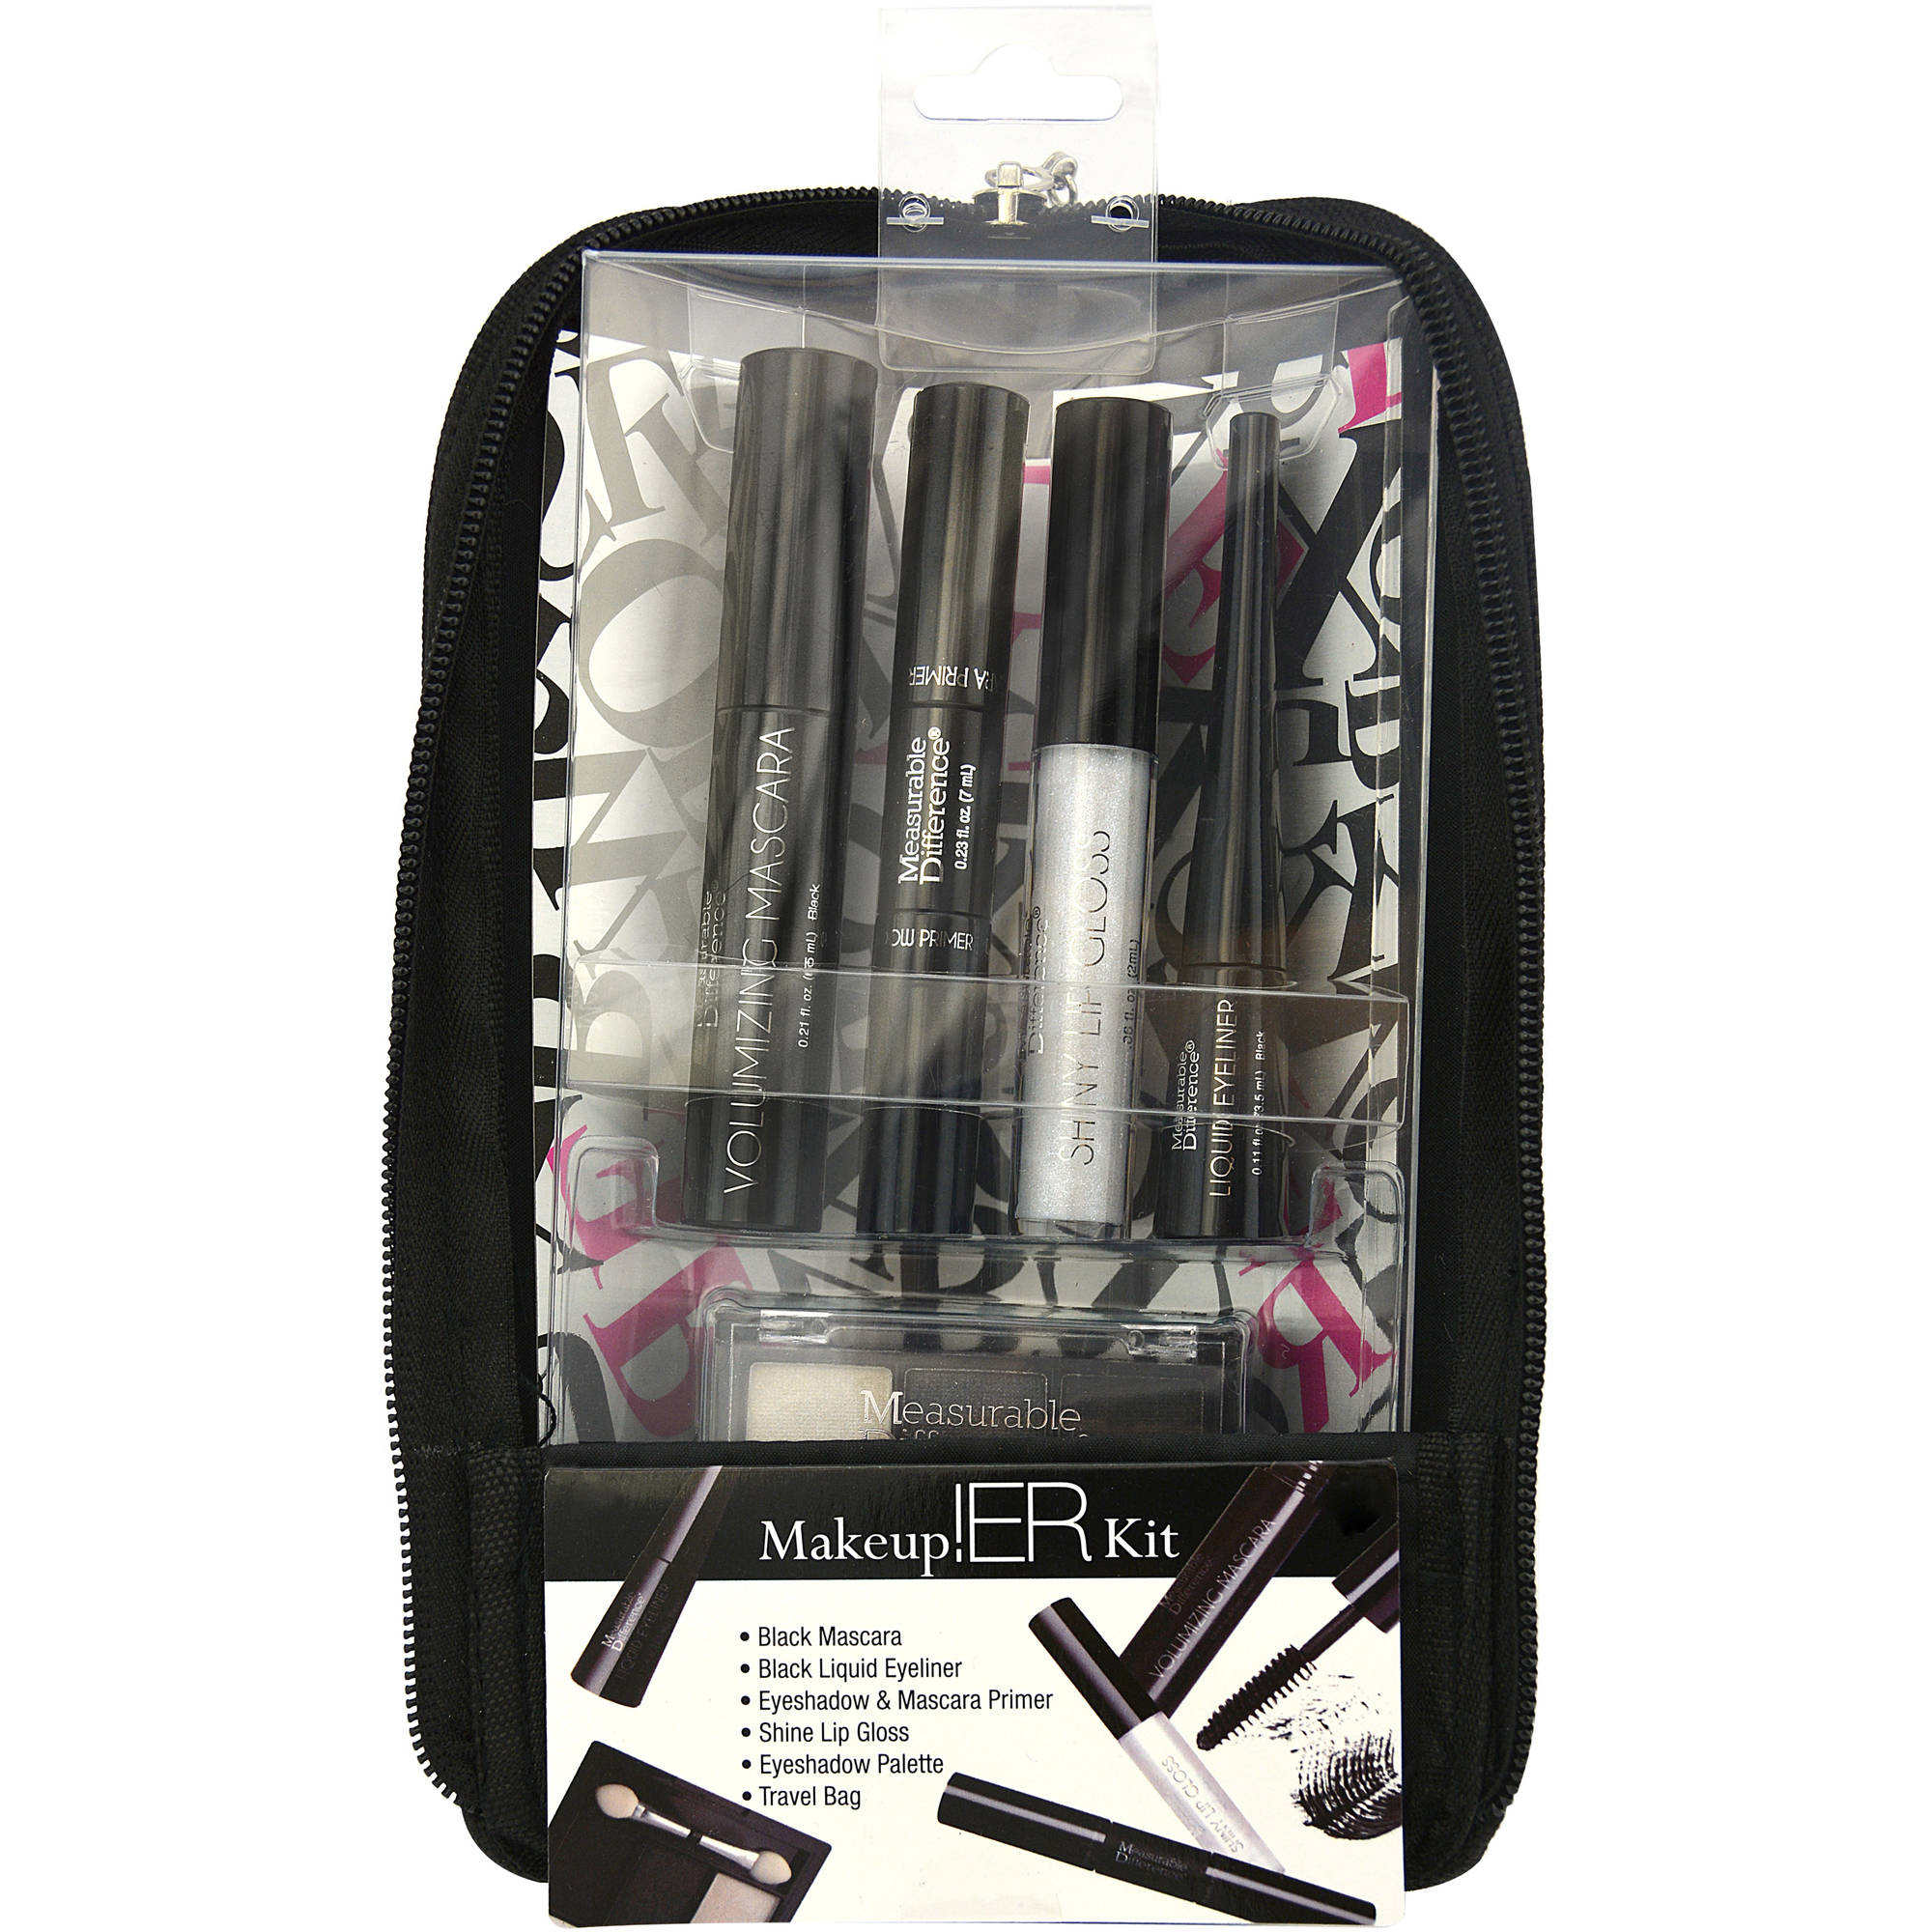 Measurable Difference Makeup!ER Kit, Black, 6 pc